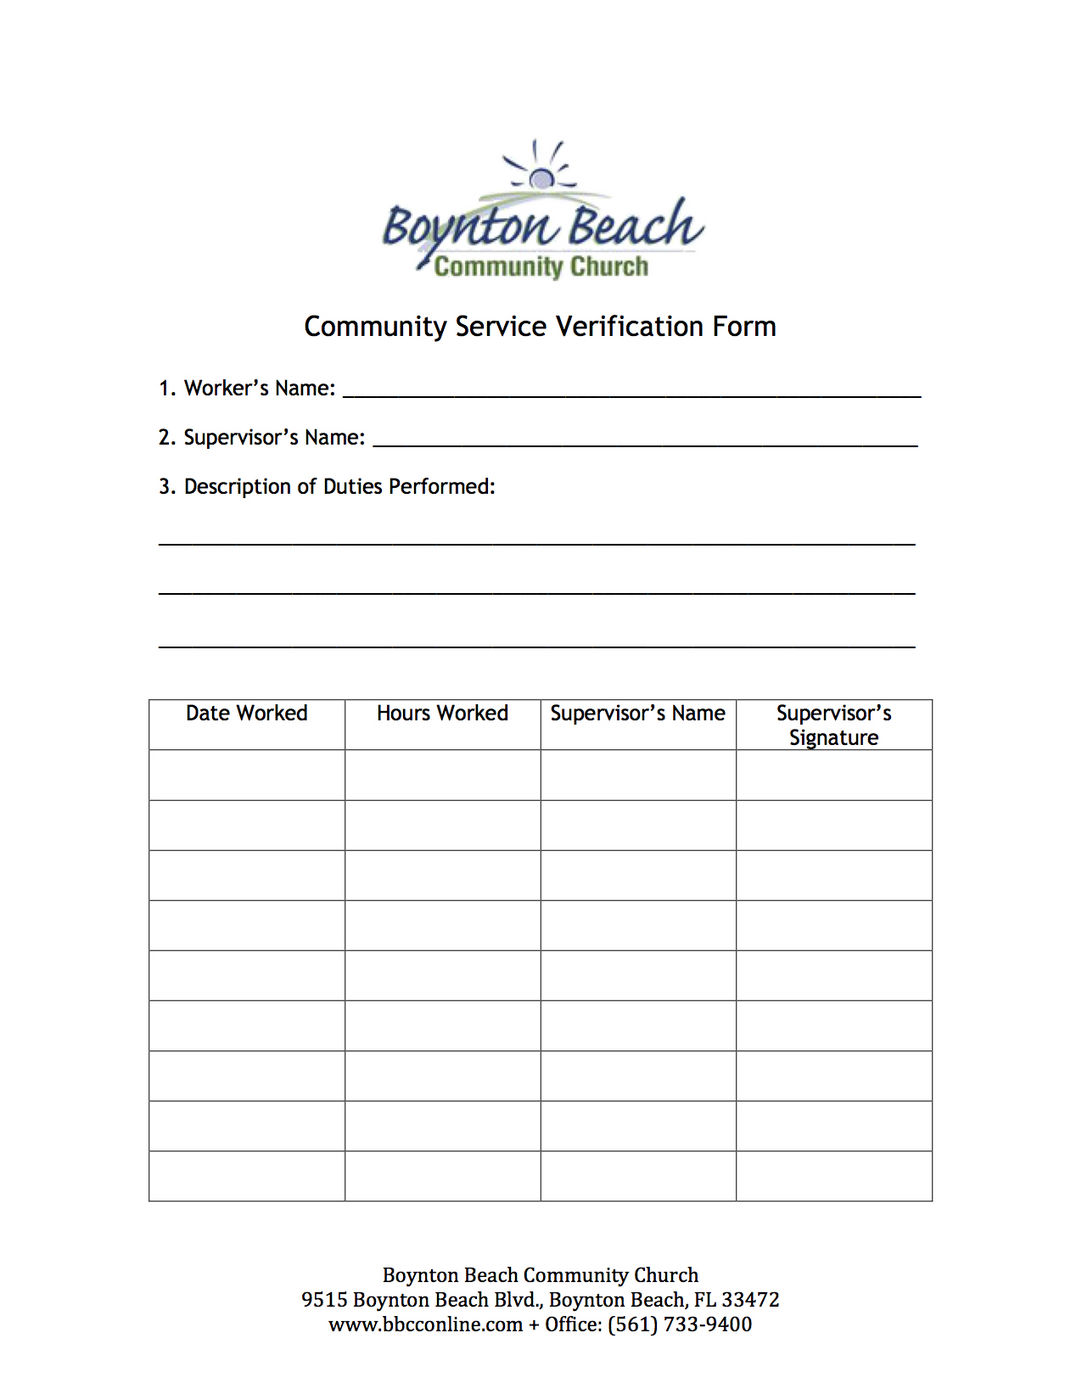 Community Service Verification Form Updated